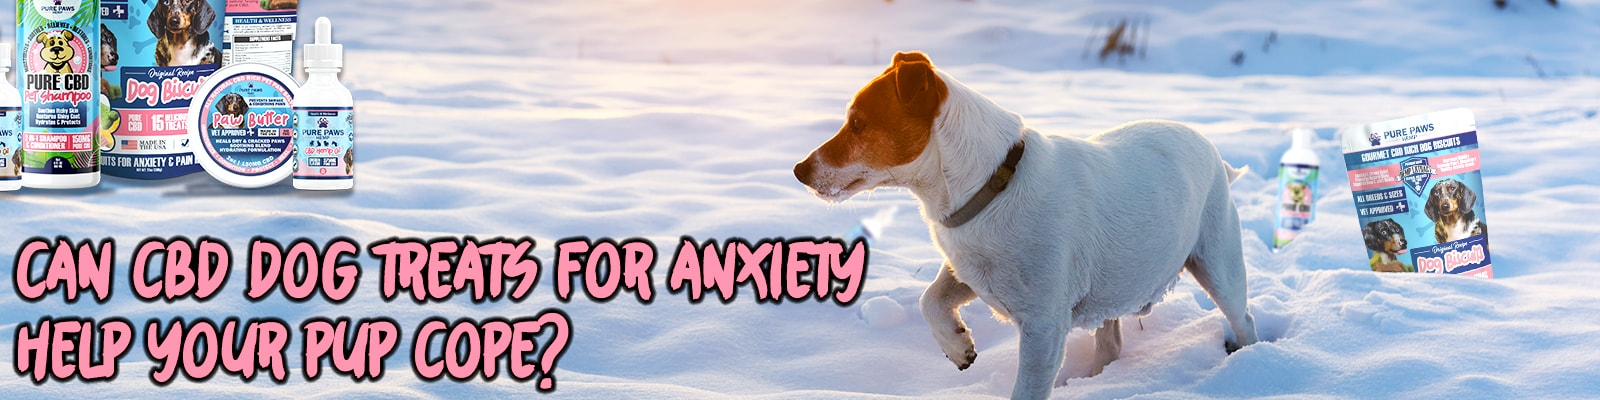 Pure paws cbd dog treats for anxiety